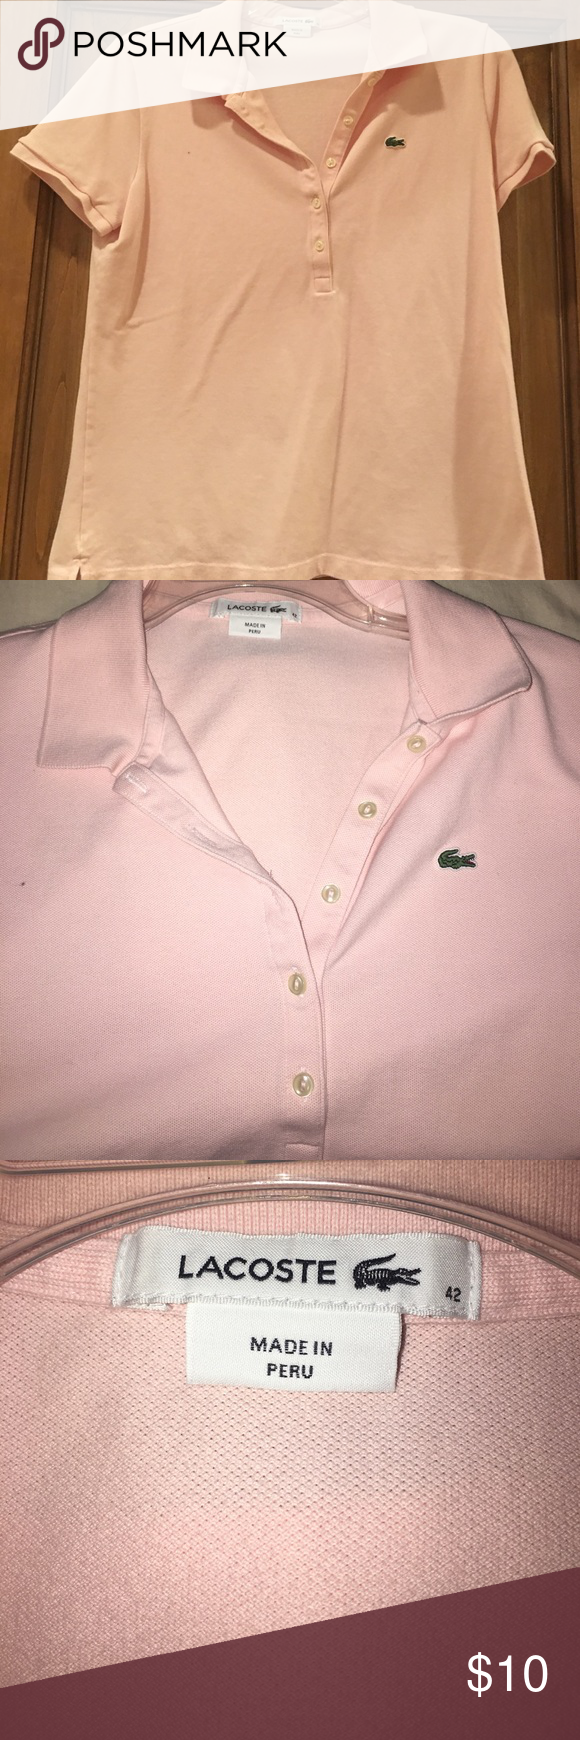 Lacoste light pink polo Ladies size 42 fits med/large Lacoste Tops